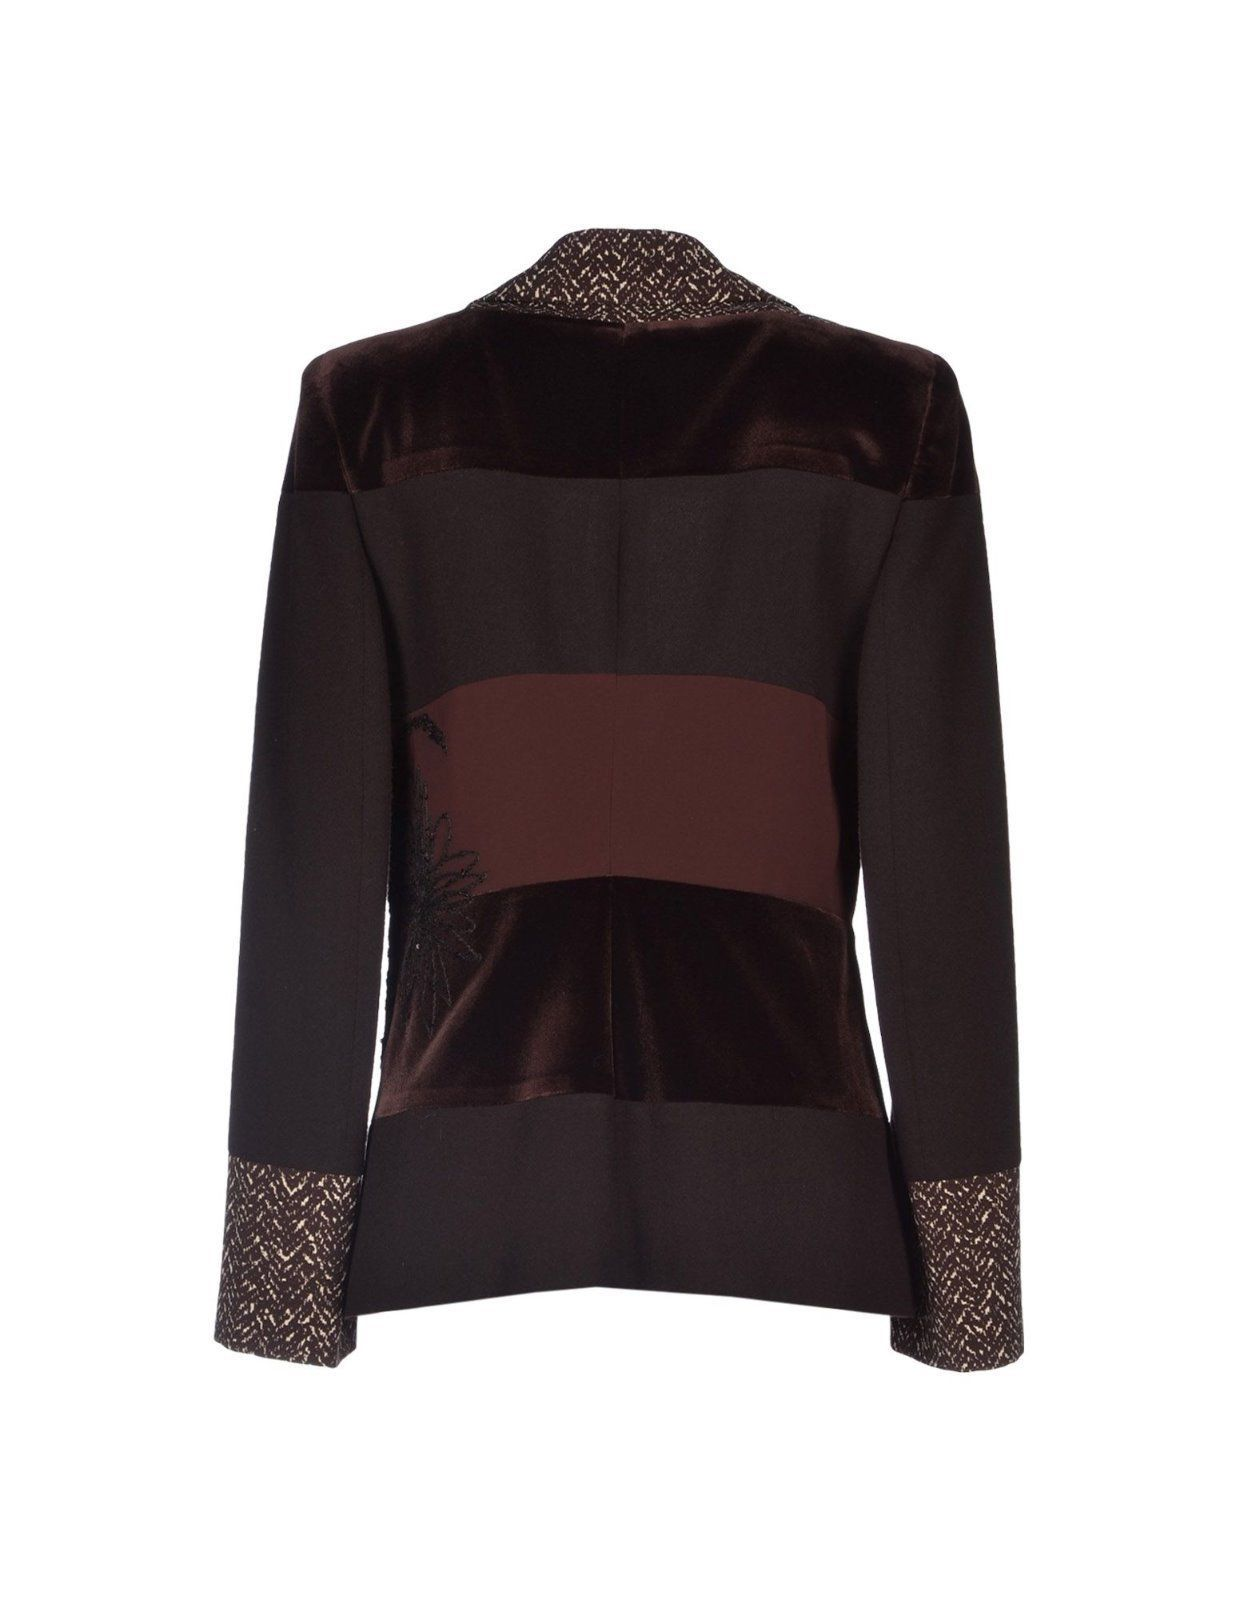 STUNNING NEW SOLD OUT FUZZI BY JEAN PAUL GAULTIER JACKET (NWT)